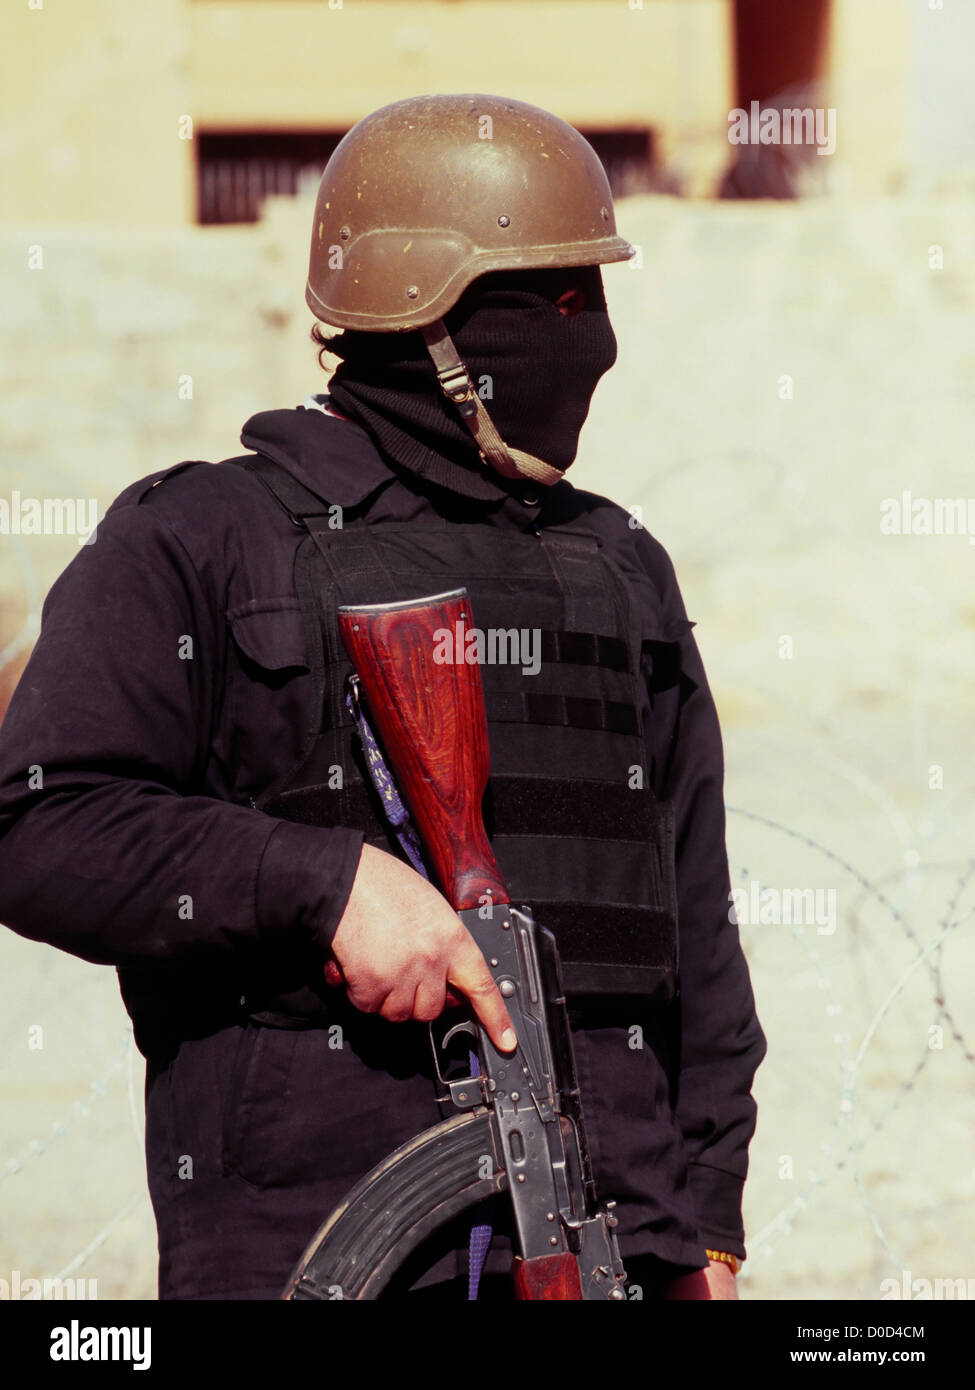 A Masked Member of the Iraqi National Police Holds His AK-47 in the City of Haditha, Iraq - Stock Image